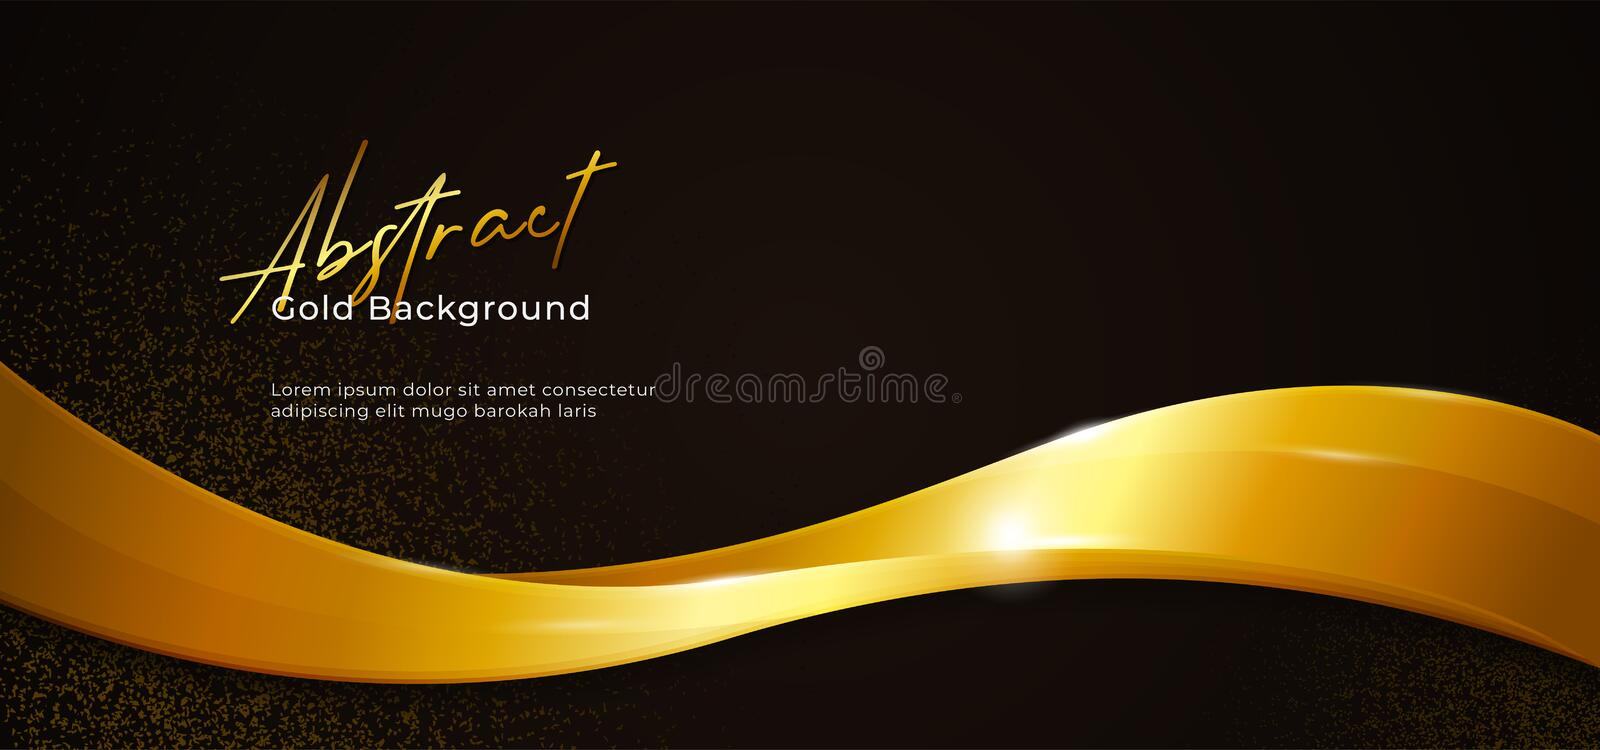 Golden sparkling abstract fluid wave vector illustration with gold glitter on dark black paper background. poster banner template royalty free illustration